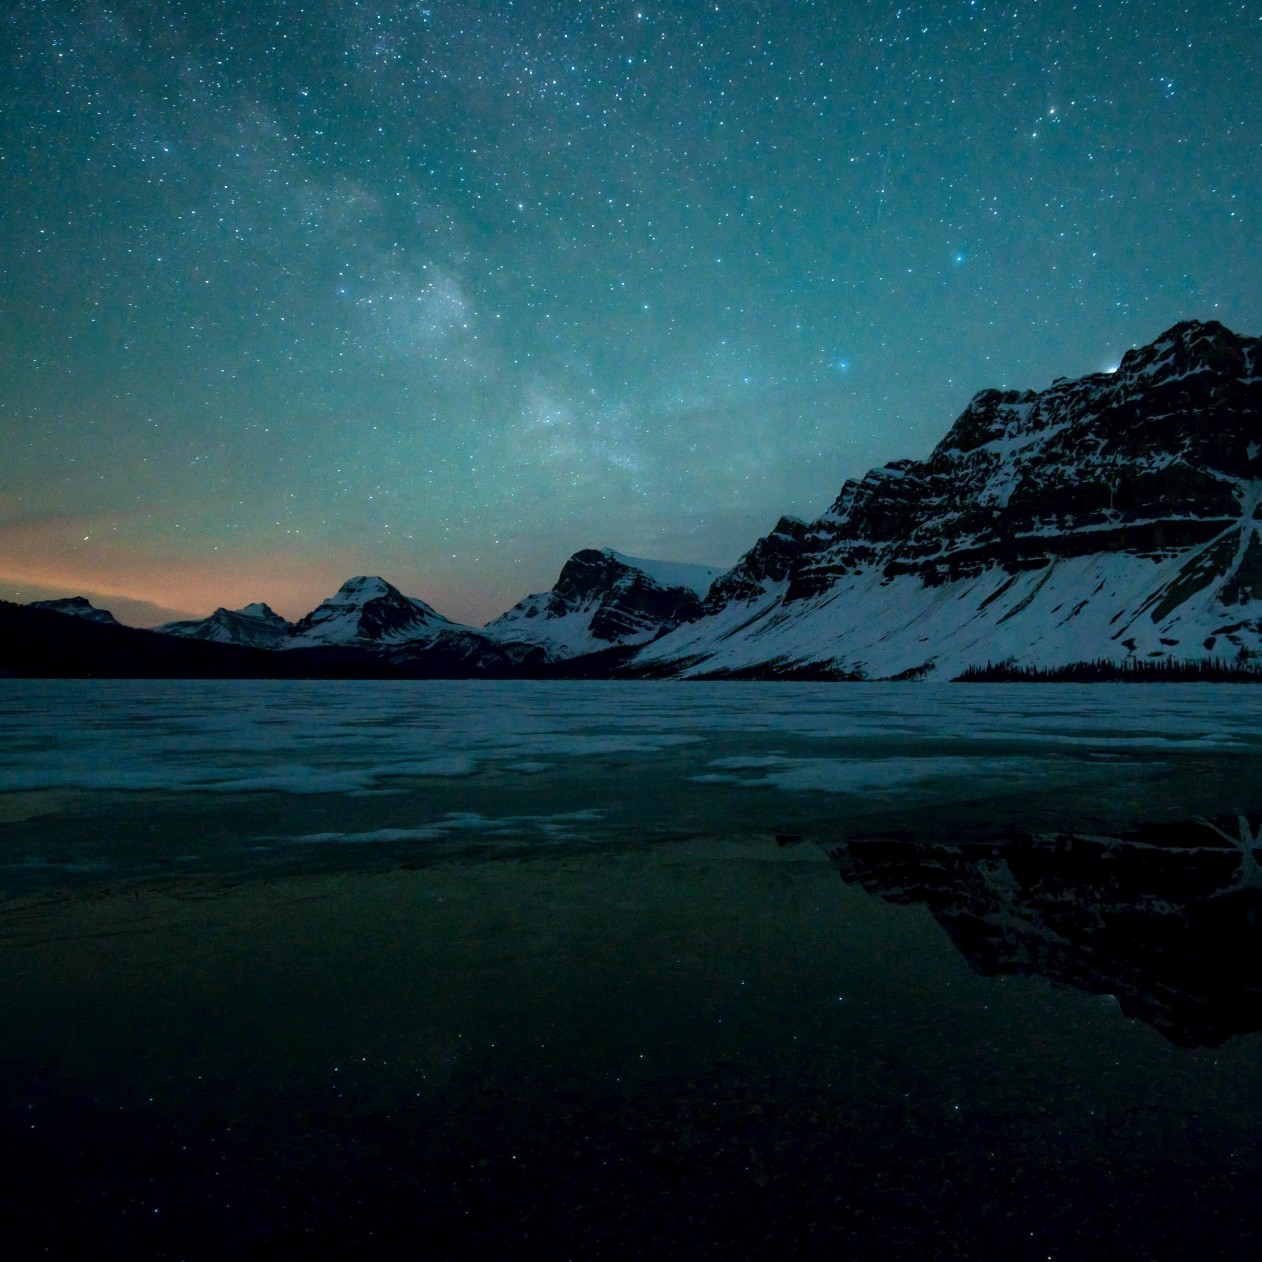 Milky Way over Bow Lake, Alberta, Canada Wallpaper for Apple iPad mini